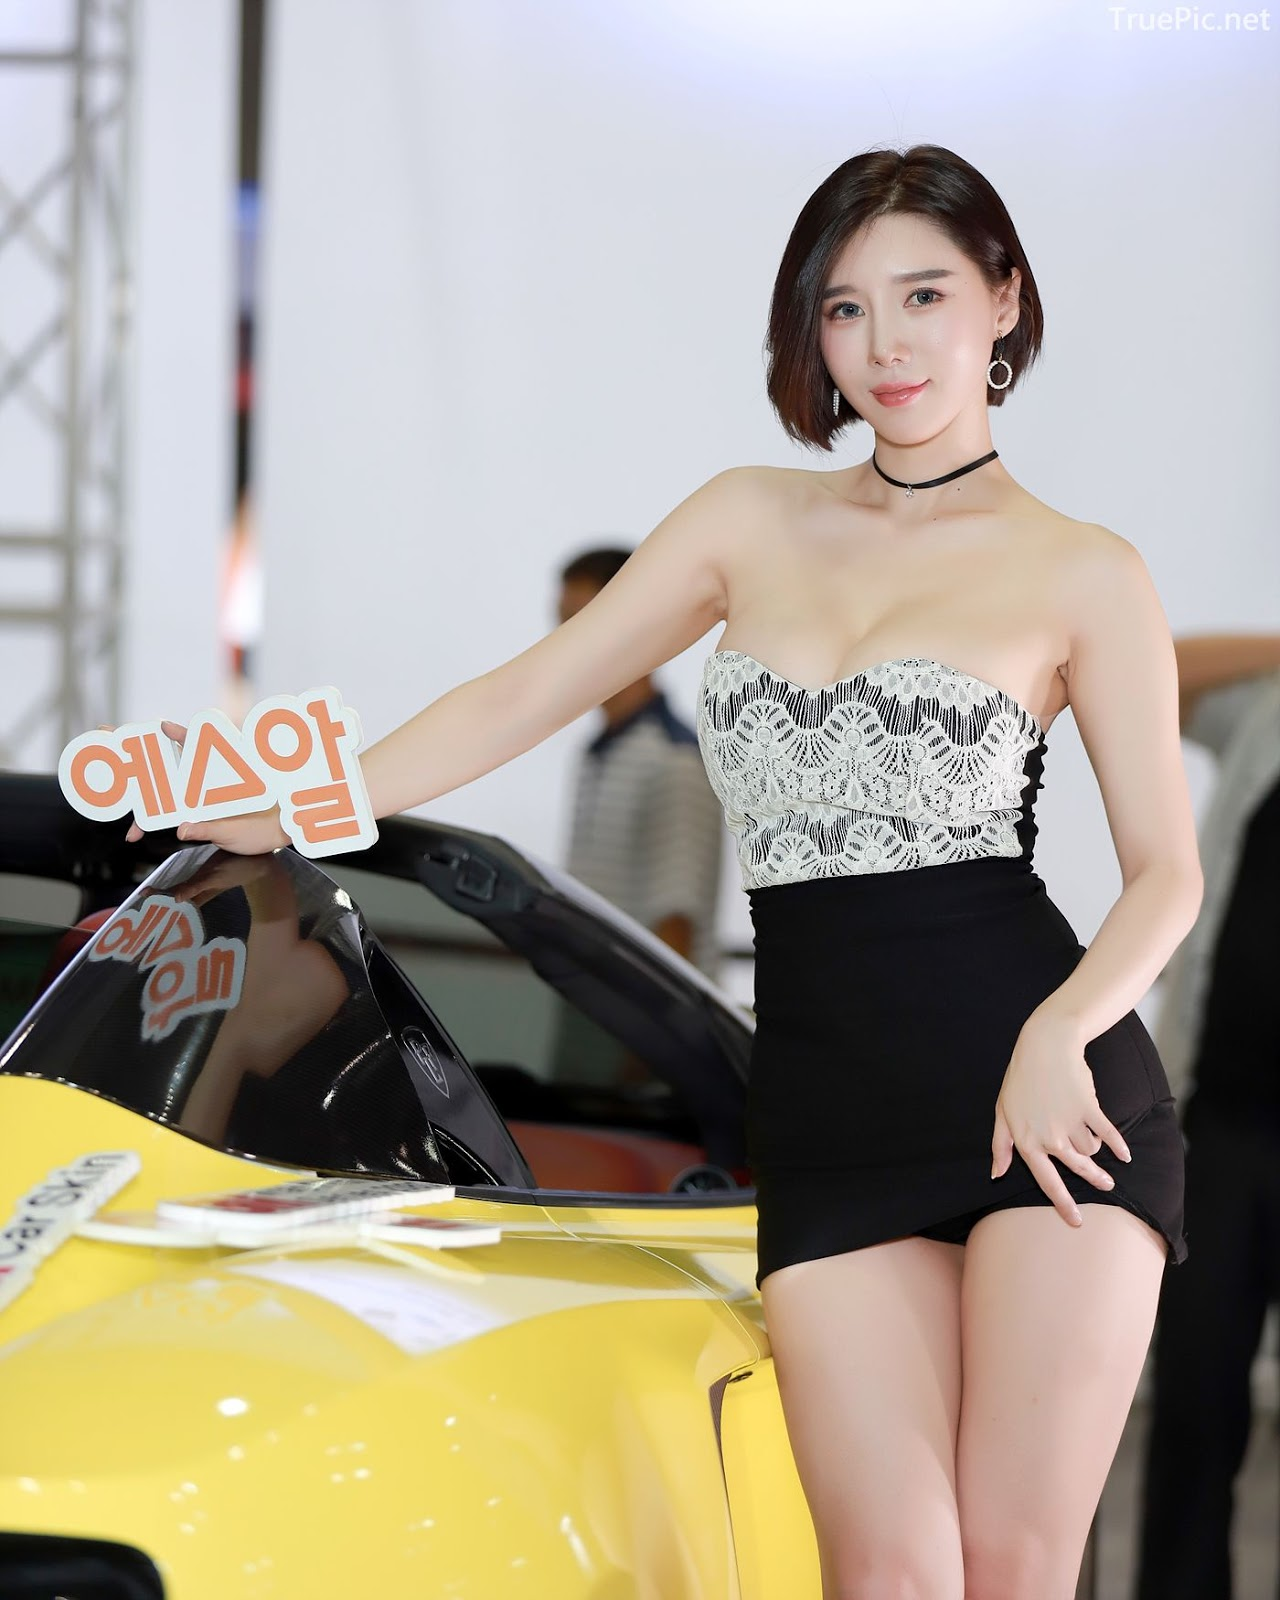 Korean Racing Model - Song Jooa - Seoul Auto Salon 2019 - Picture 3